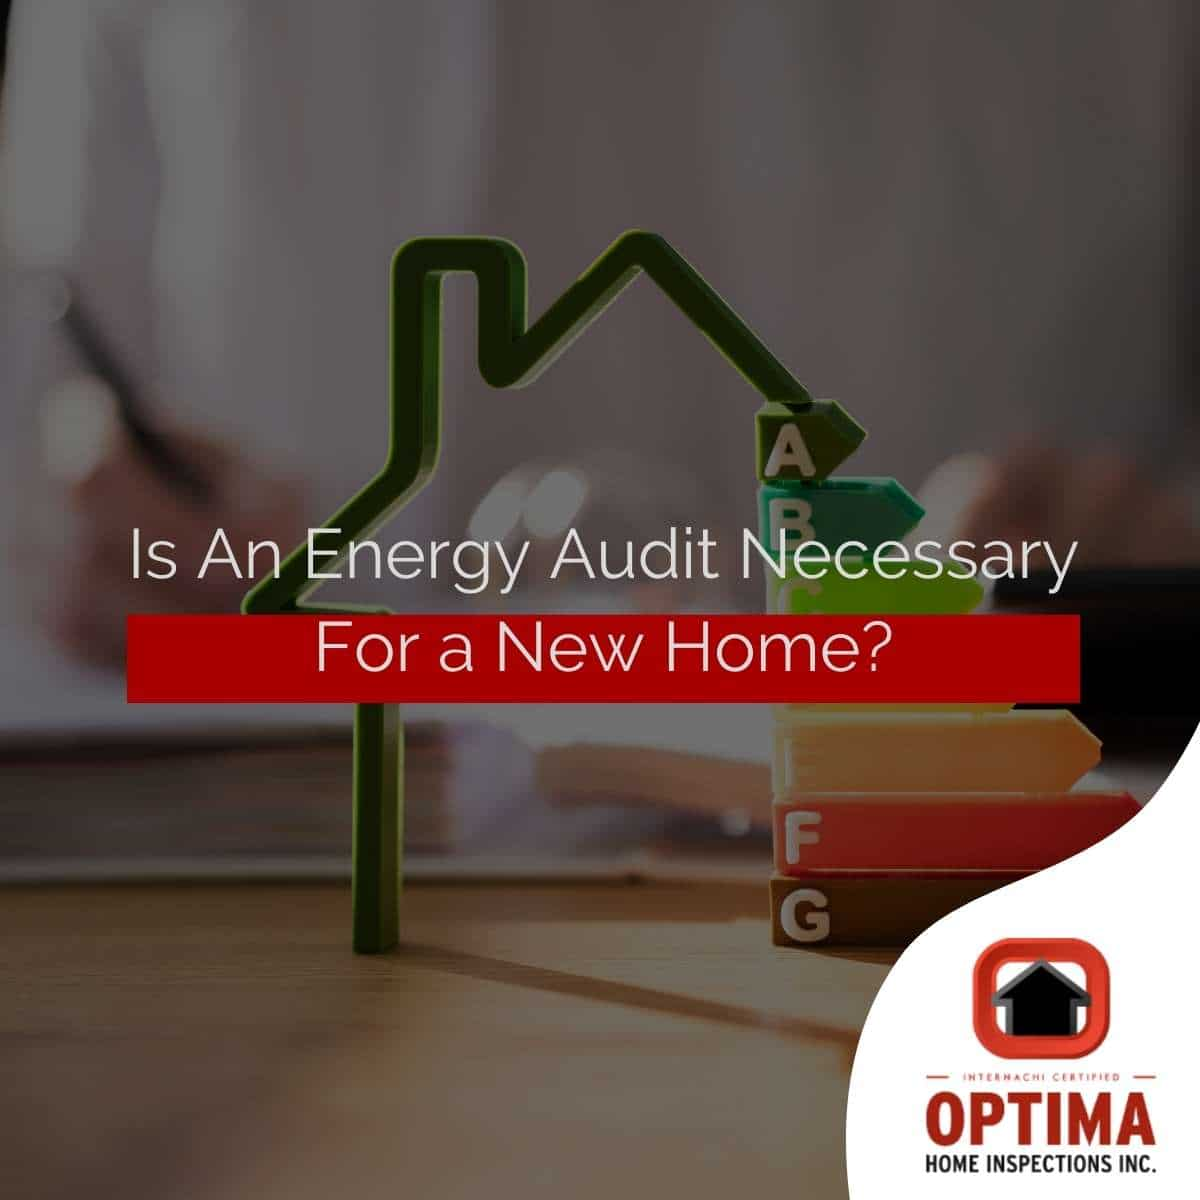 Is An Energy Audit Necessary For a New Home?